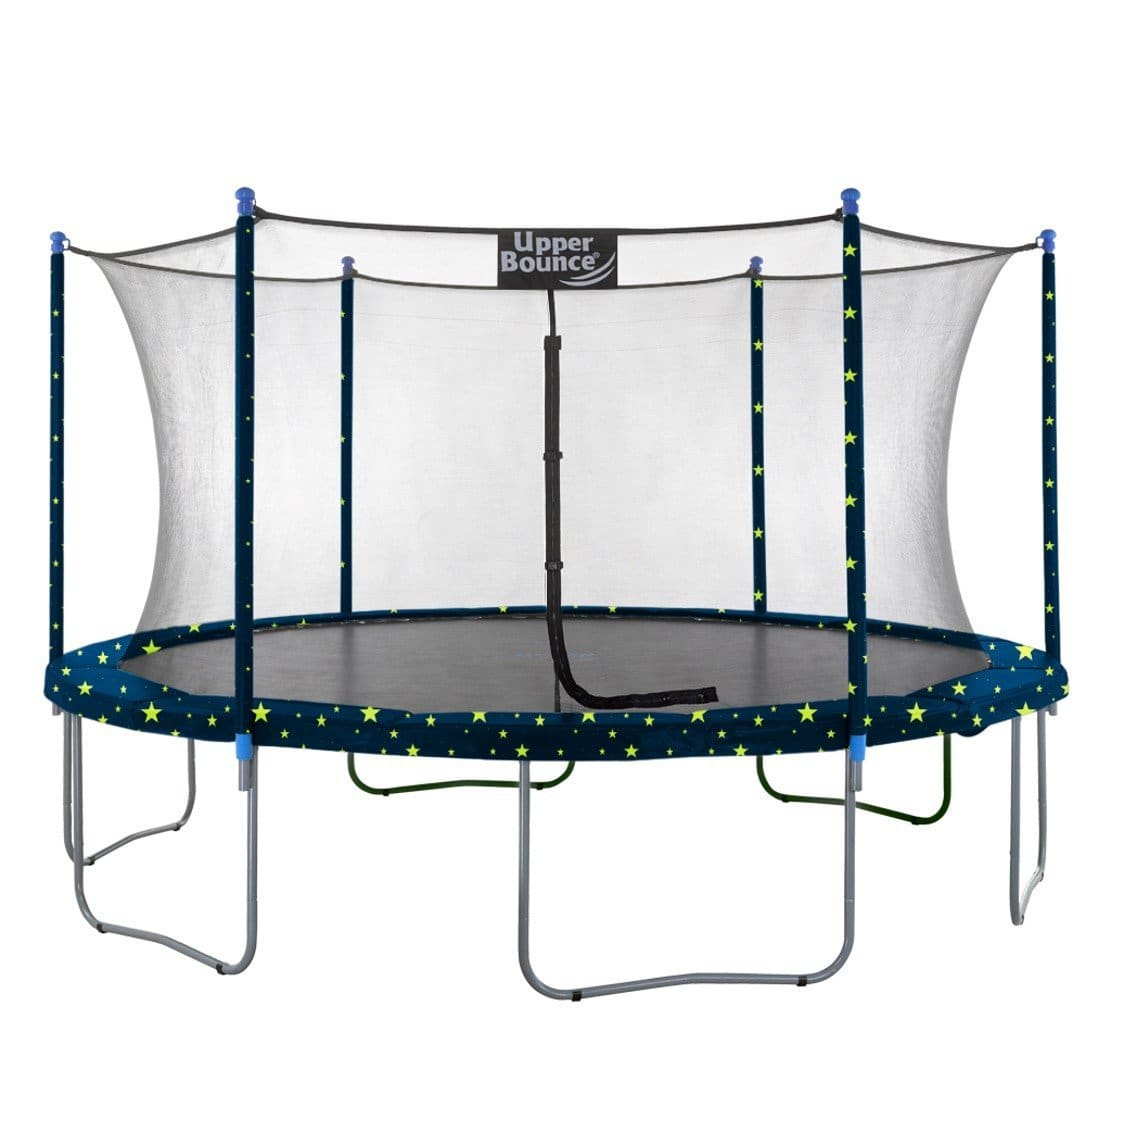 Upper Bounce 16 FT Round Trampoline Set with Safety Enclosure System - Starry Night